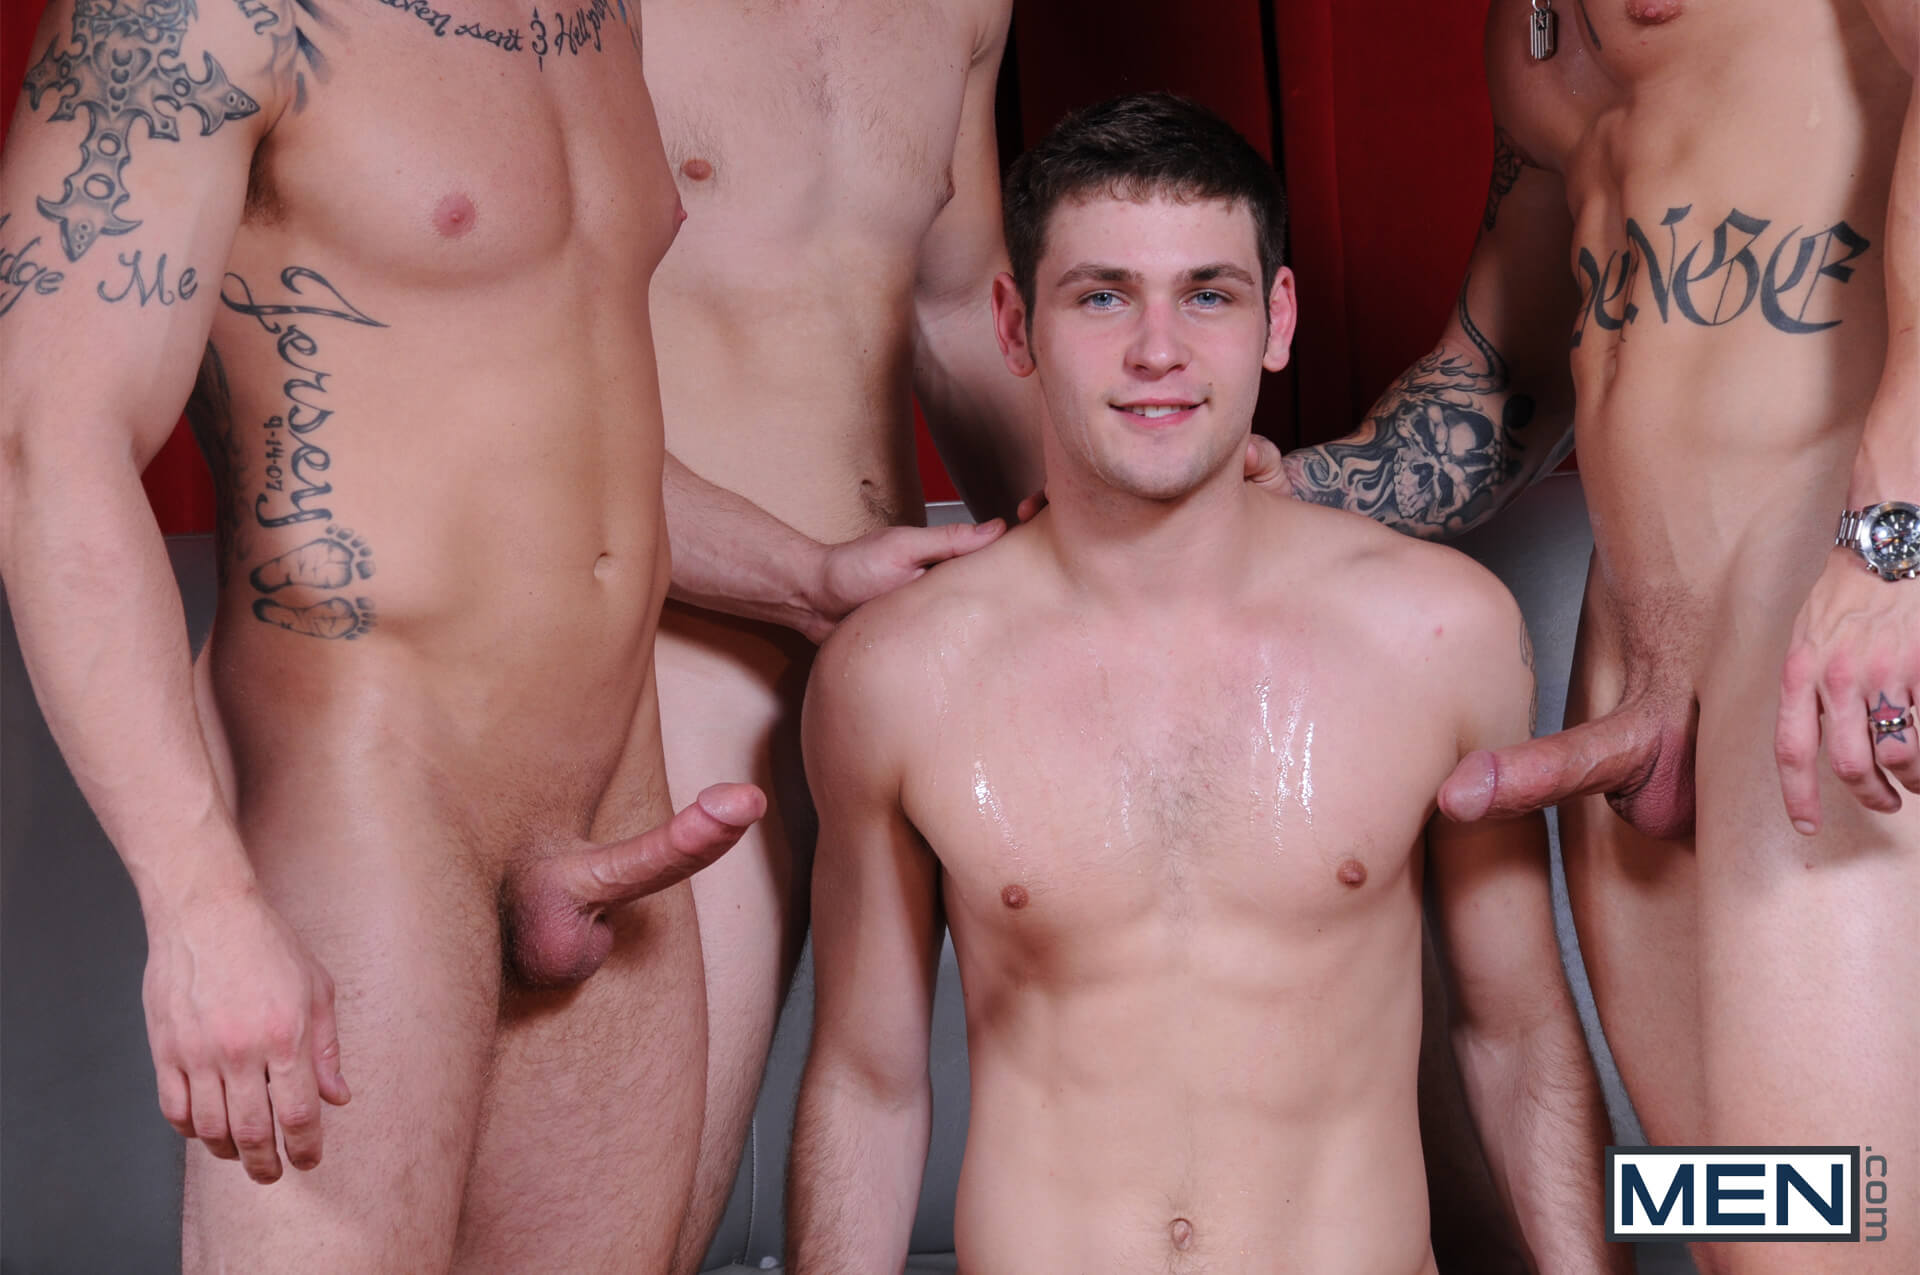 men jizz orgy fuck club part 2 cameron knight duncan black jimmy johnson sebastian young gay porn blog image 14